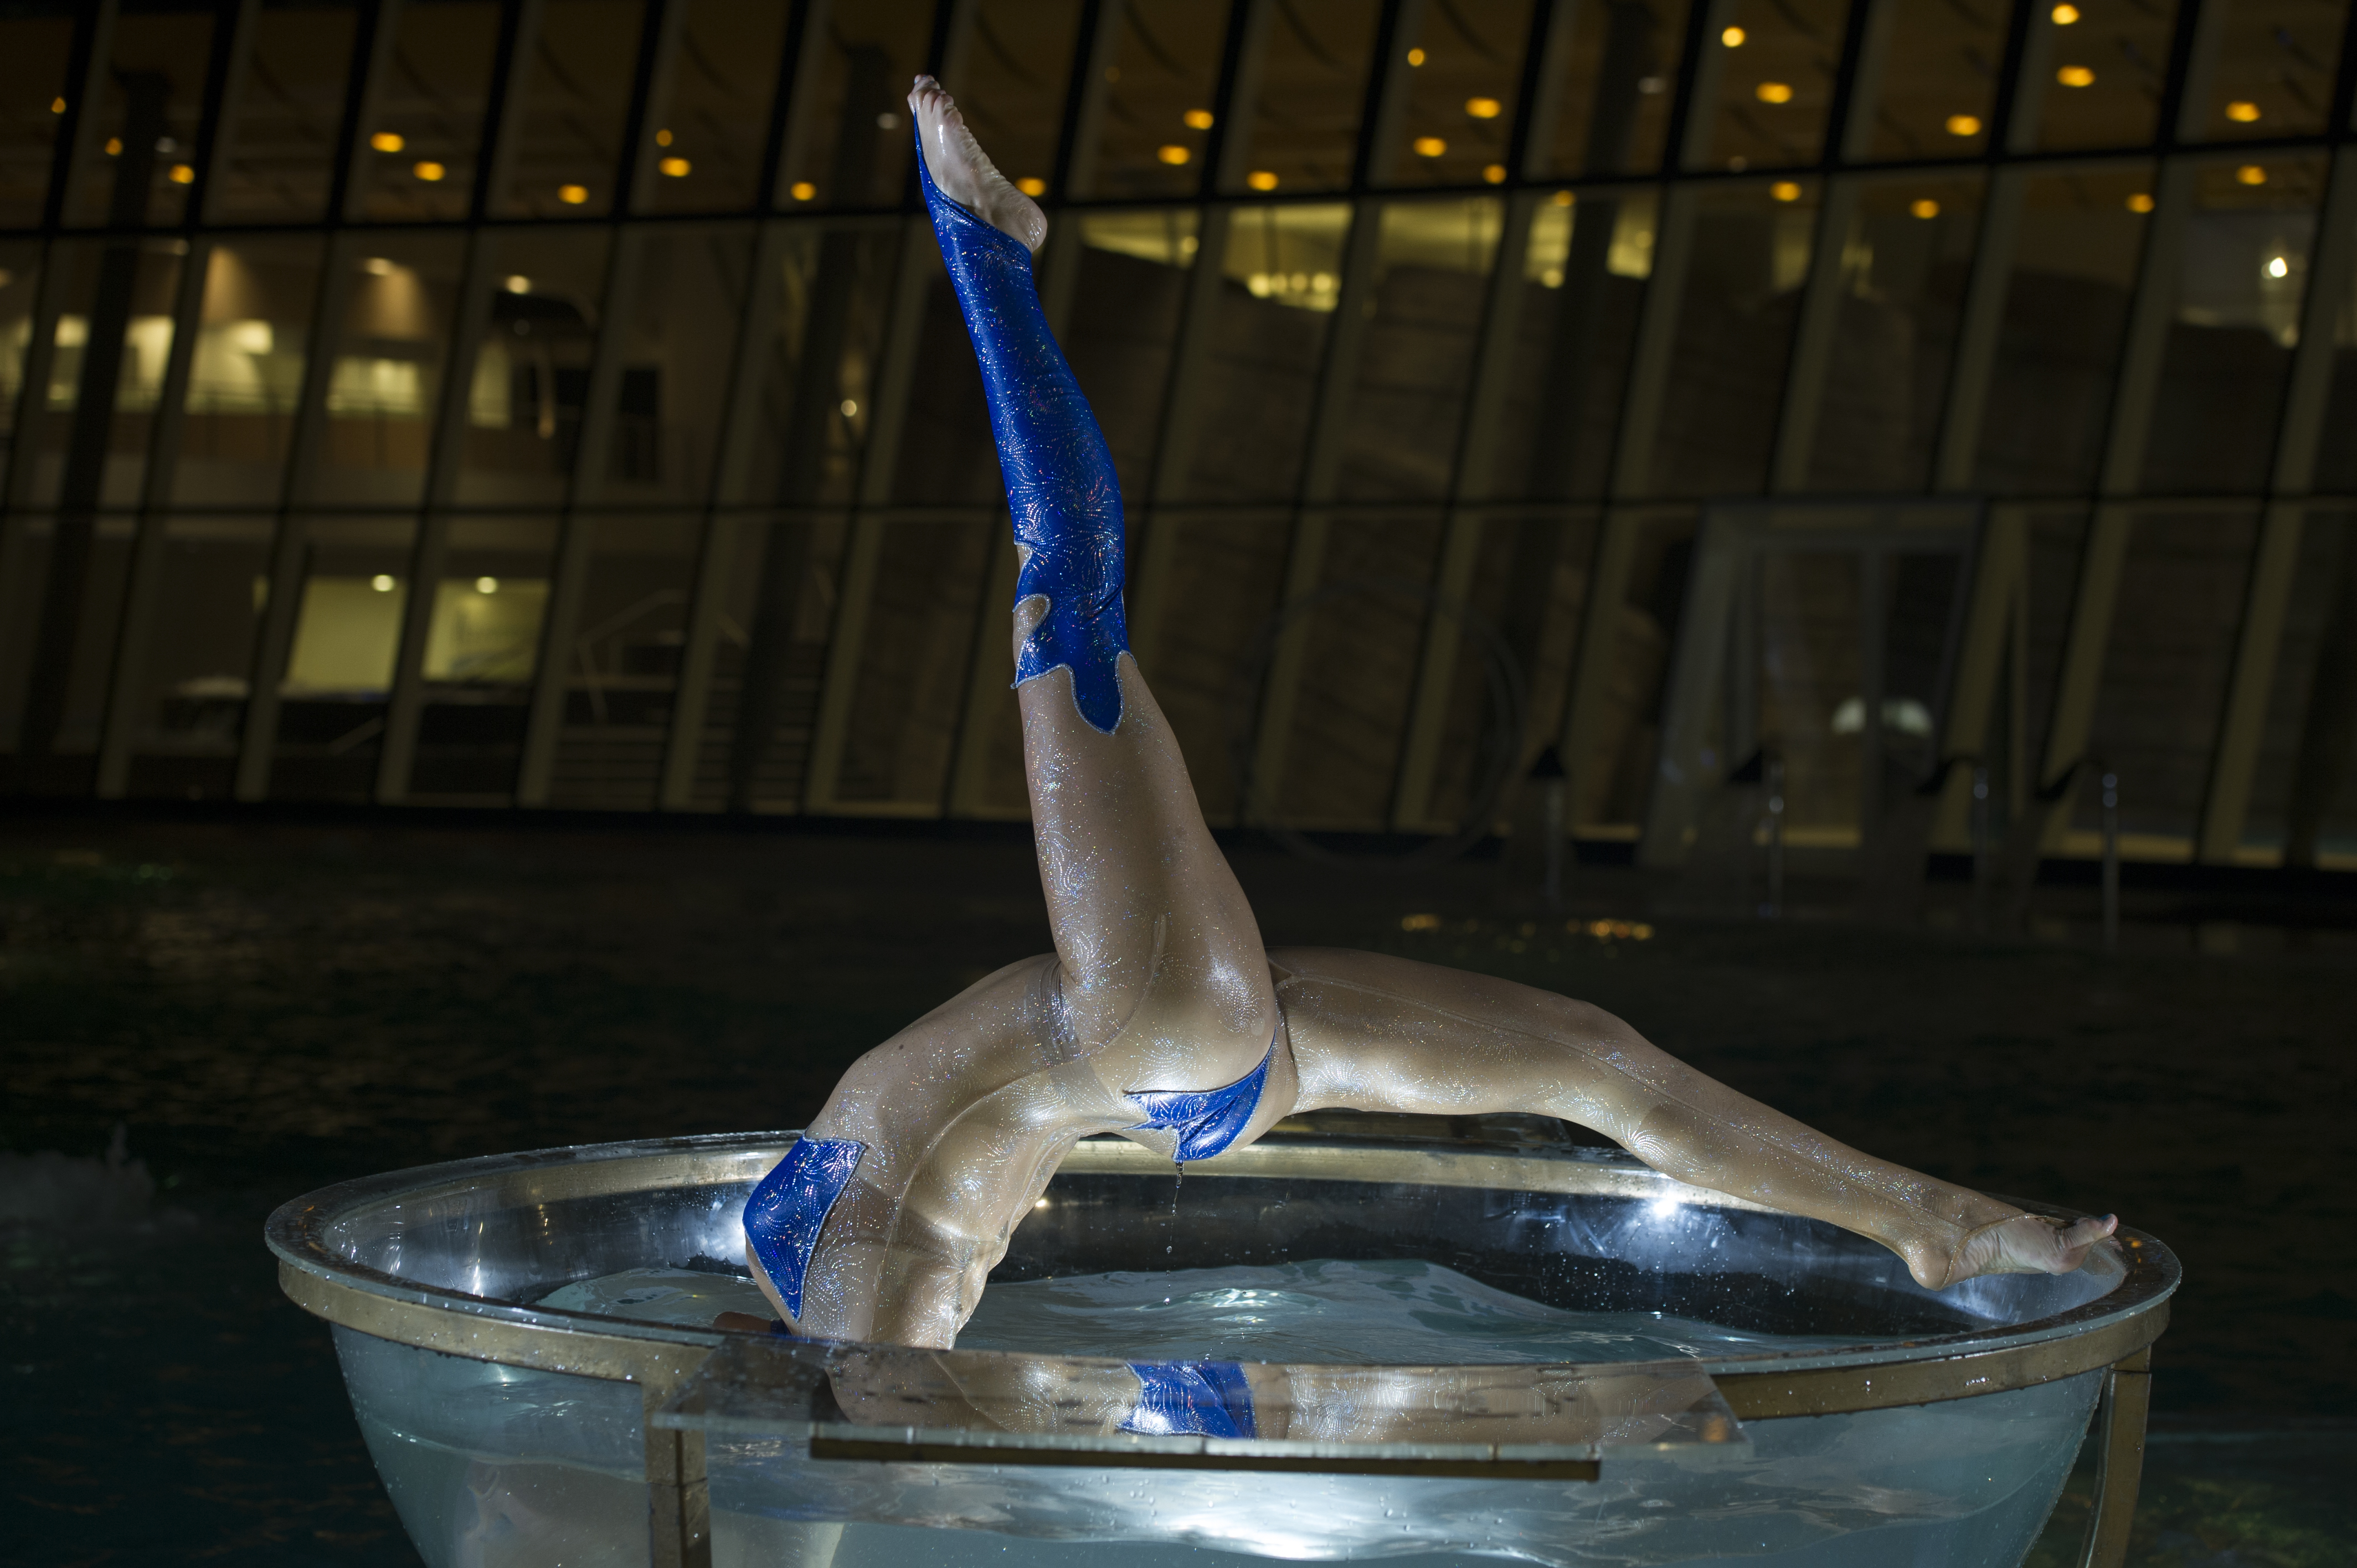 water+bowl+acrobatic+show+performance+29.jpg